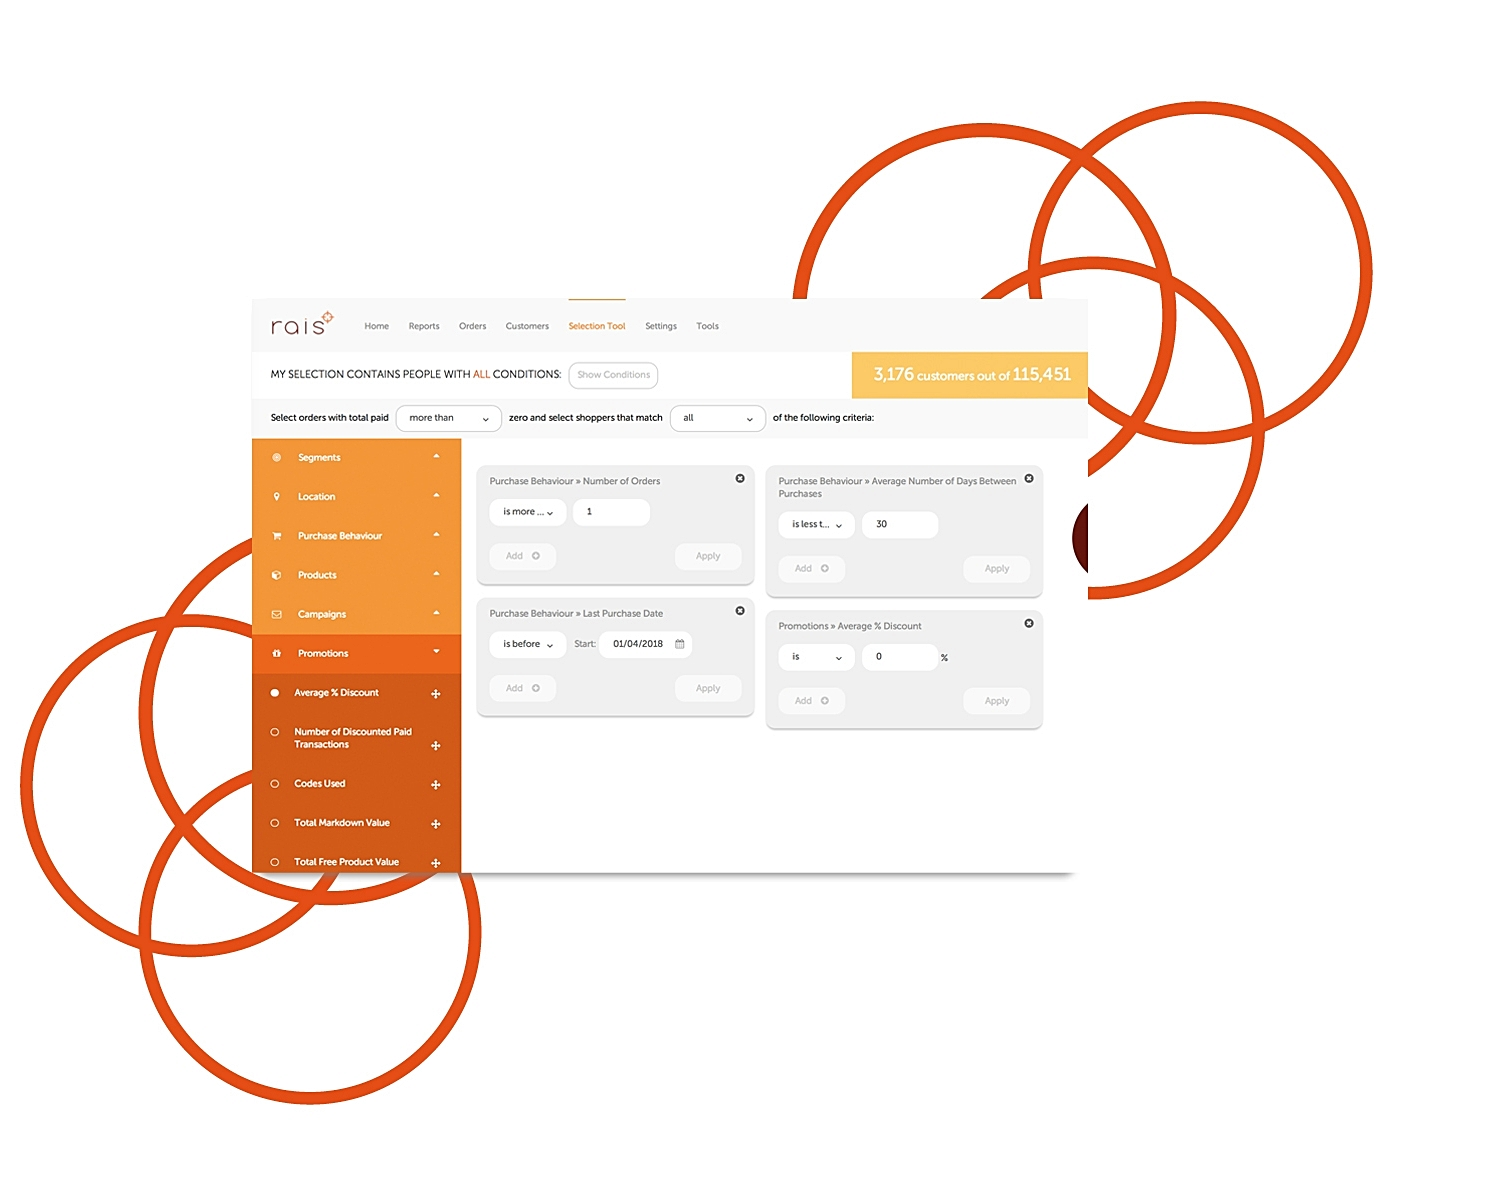 Real-time campaign selections - Create selections of specific customers for your: Email, Direct Mail, Facebook Ads or Google Ads campaigns in seconds. Iterate through different combinations of customers to see how big selections are and how many people you have permission to contact. Then automatically send your selections to your Marketing Platforms or export to CSV.Fast, flexible and easy to use.